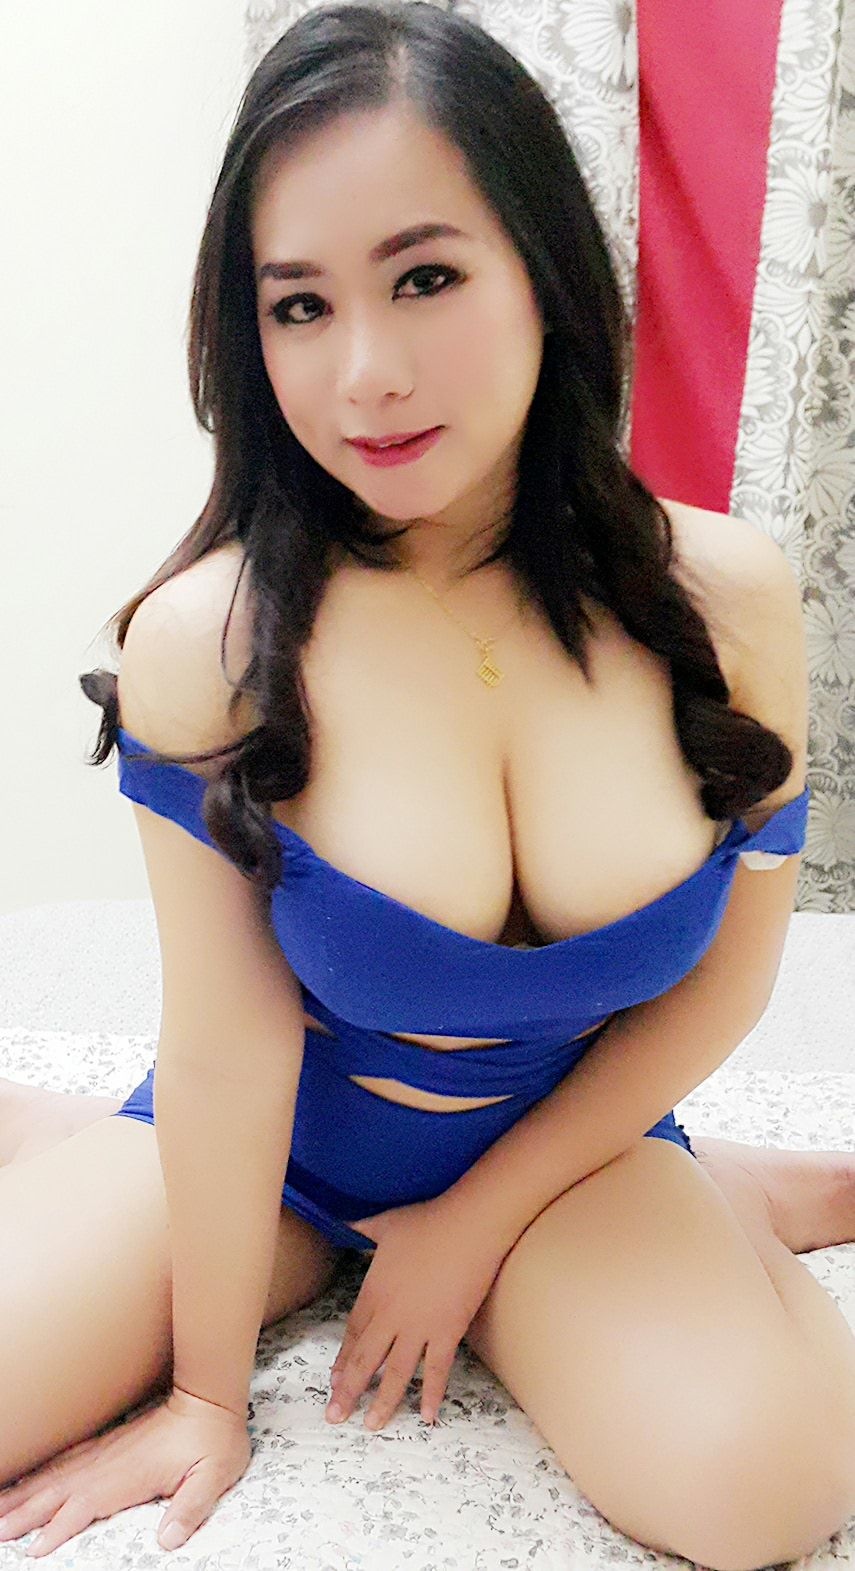 eskorte rog huge boobs escort